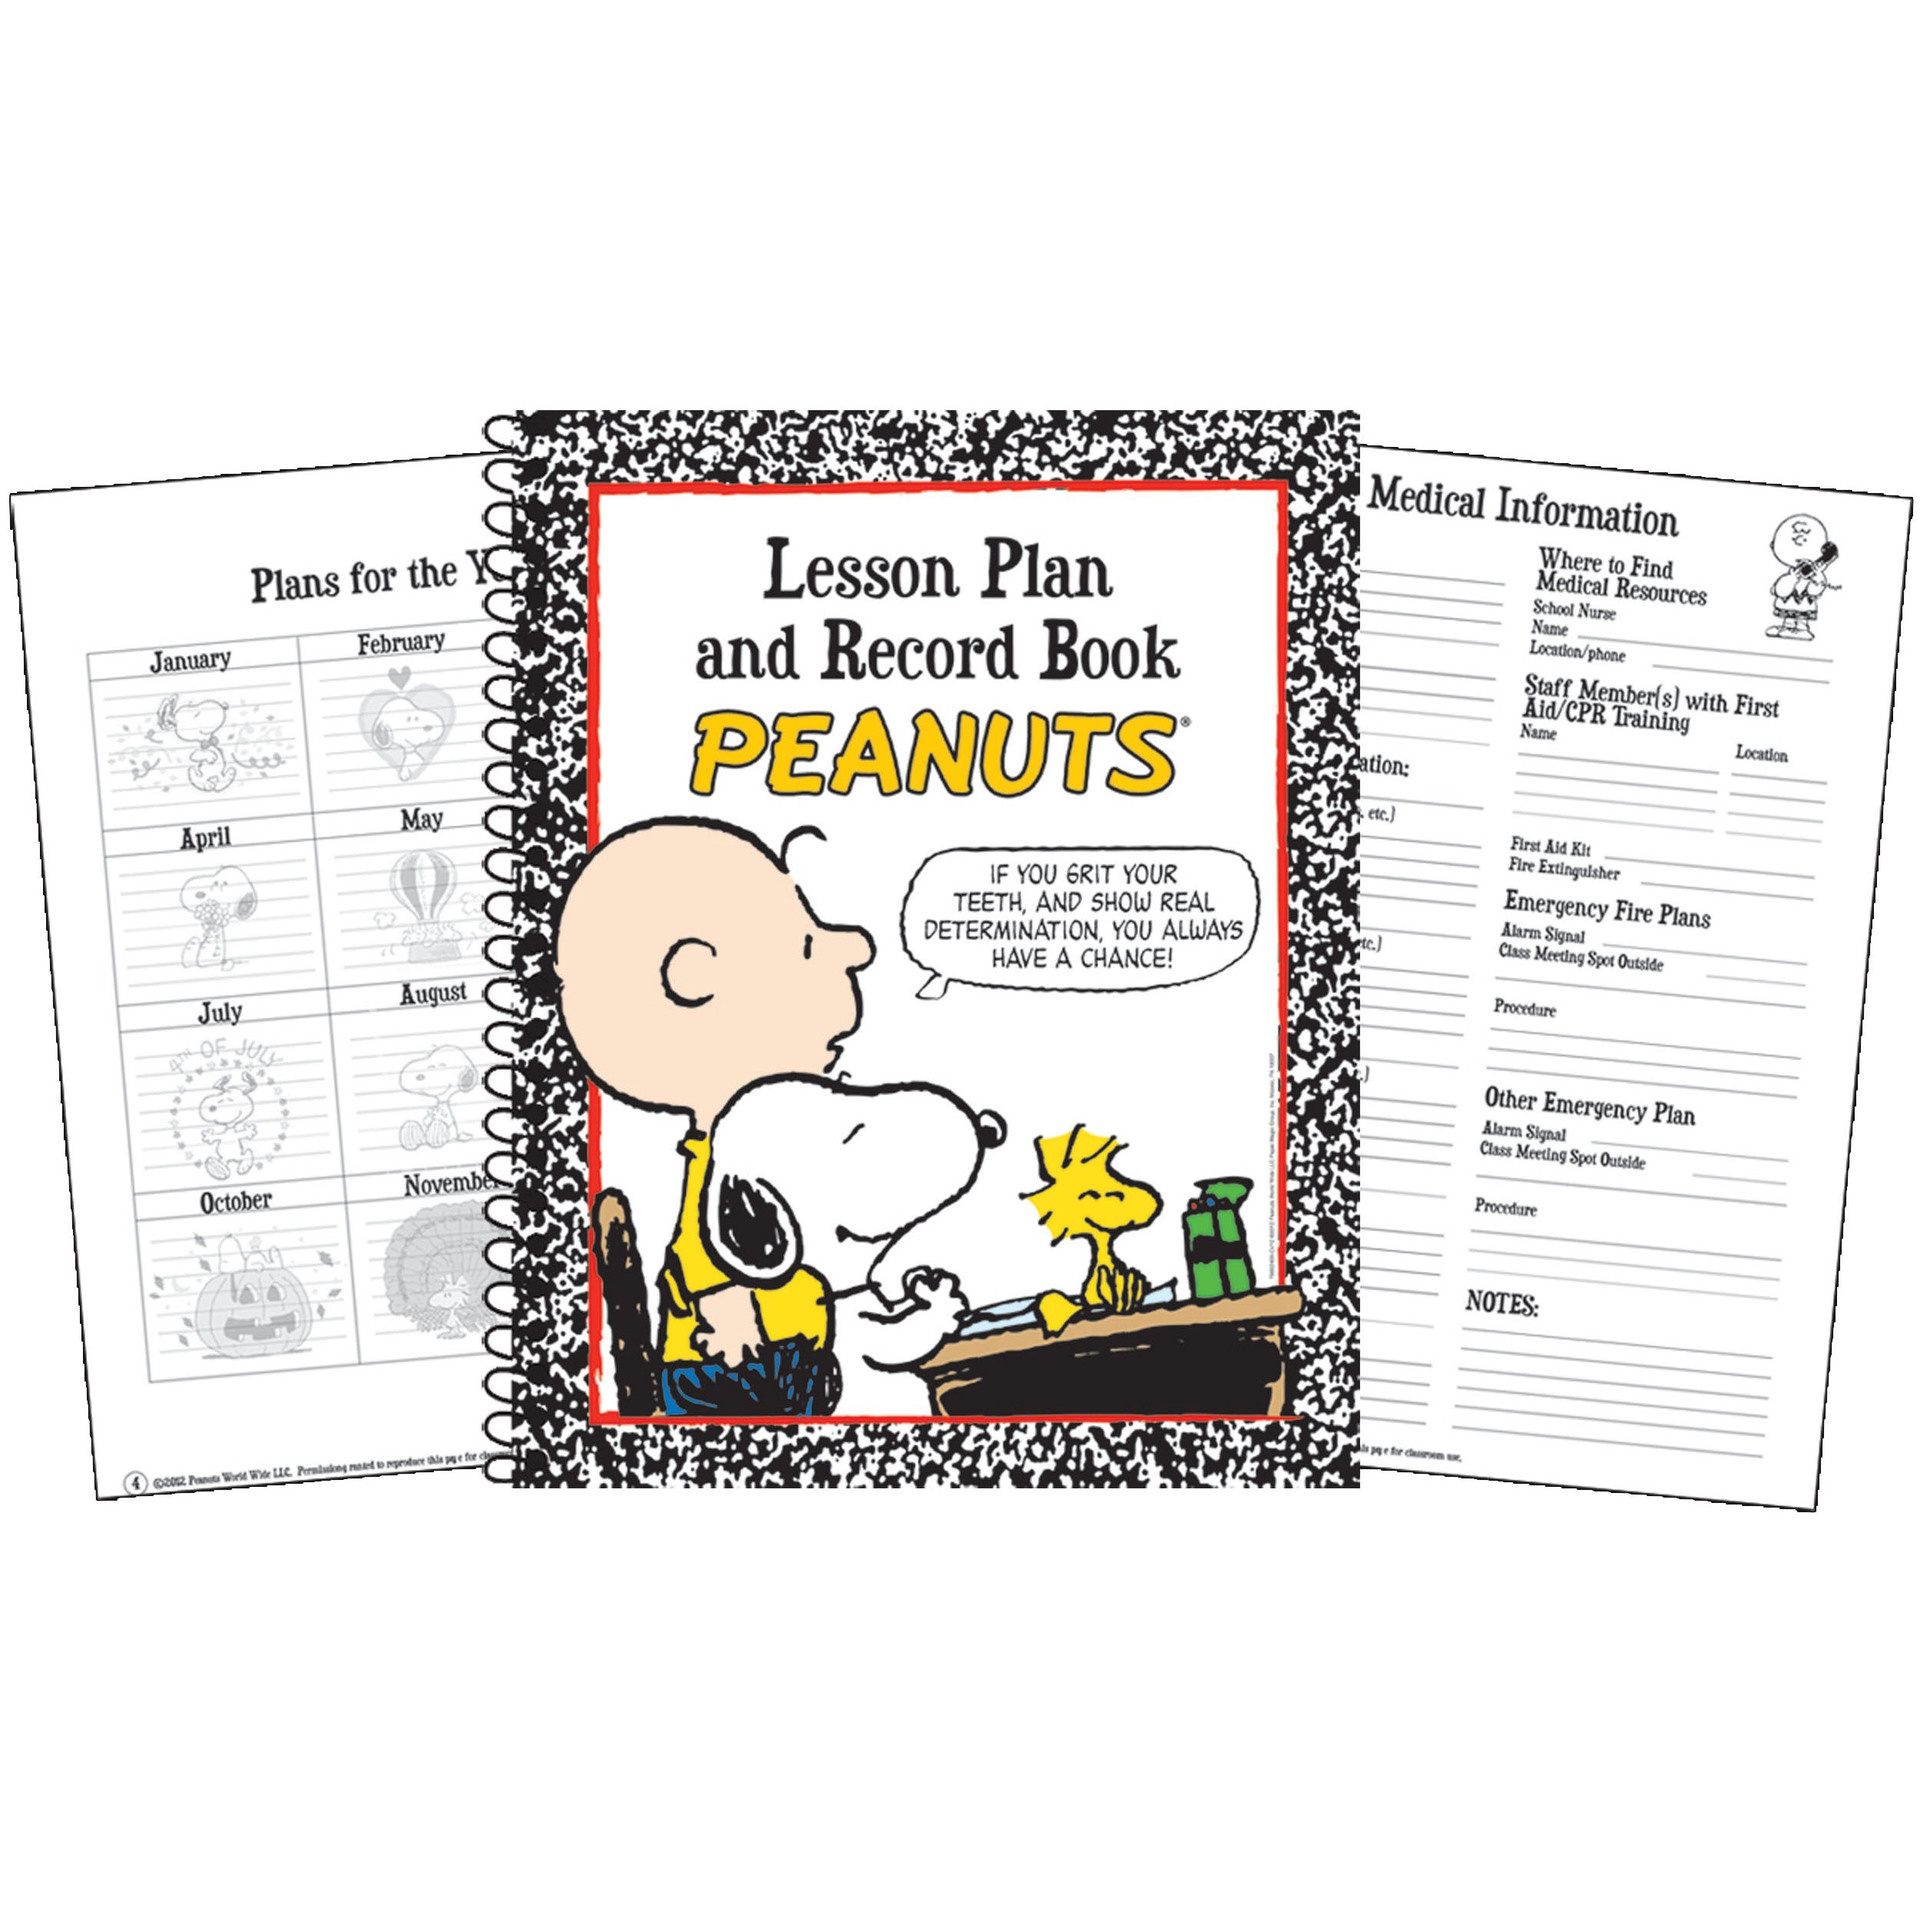 EU 866240 PEANUTS LESSON PLAN/RECORD BOOK